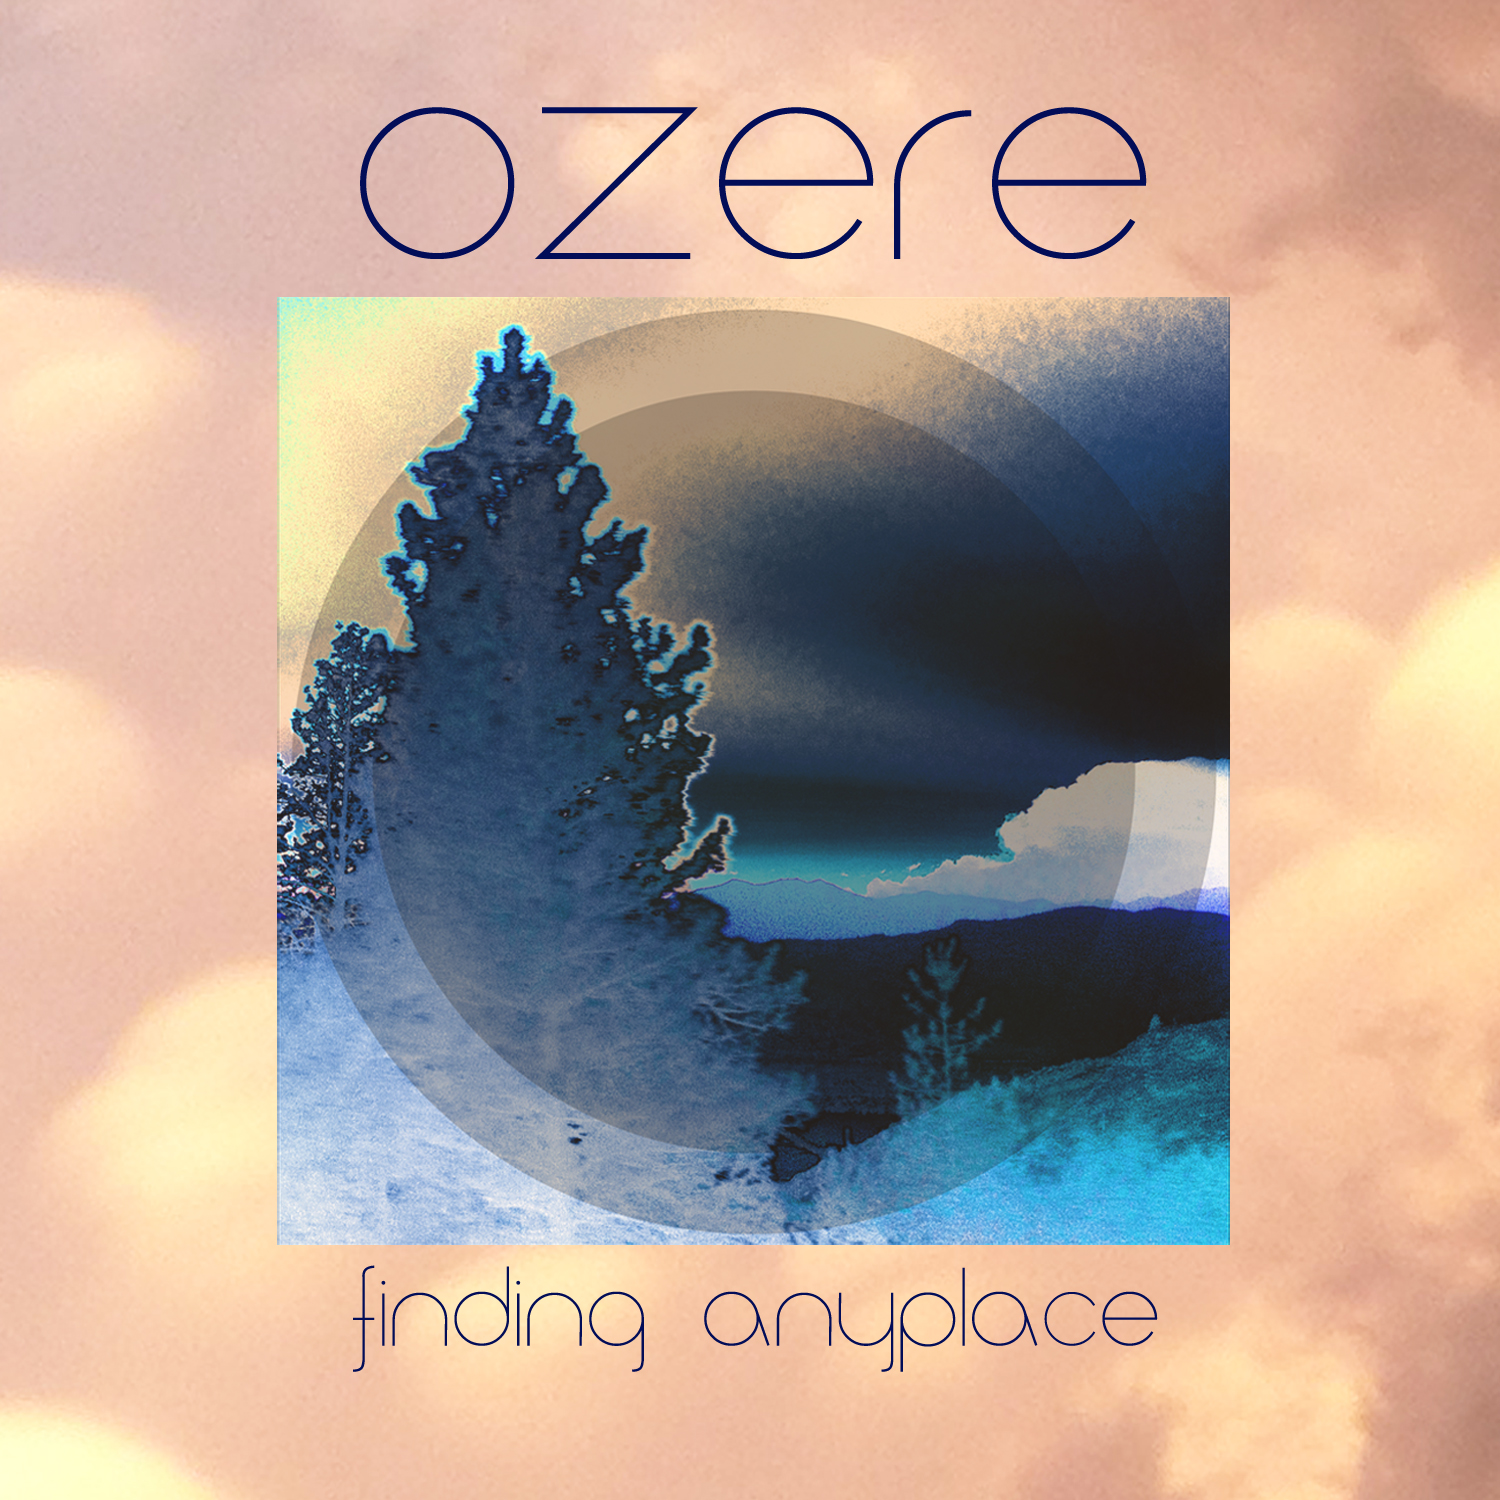 """Finding Anyplace"" Album Cover"